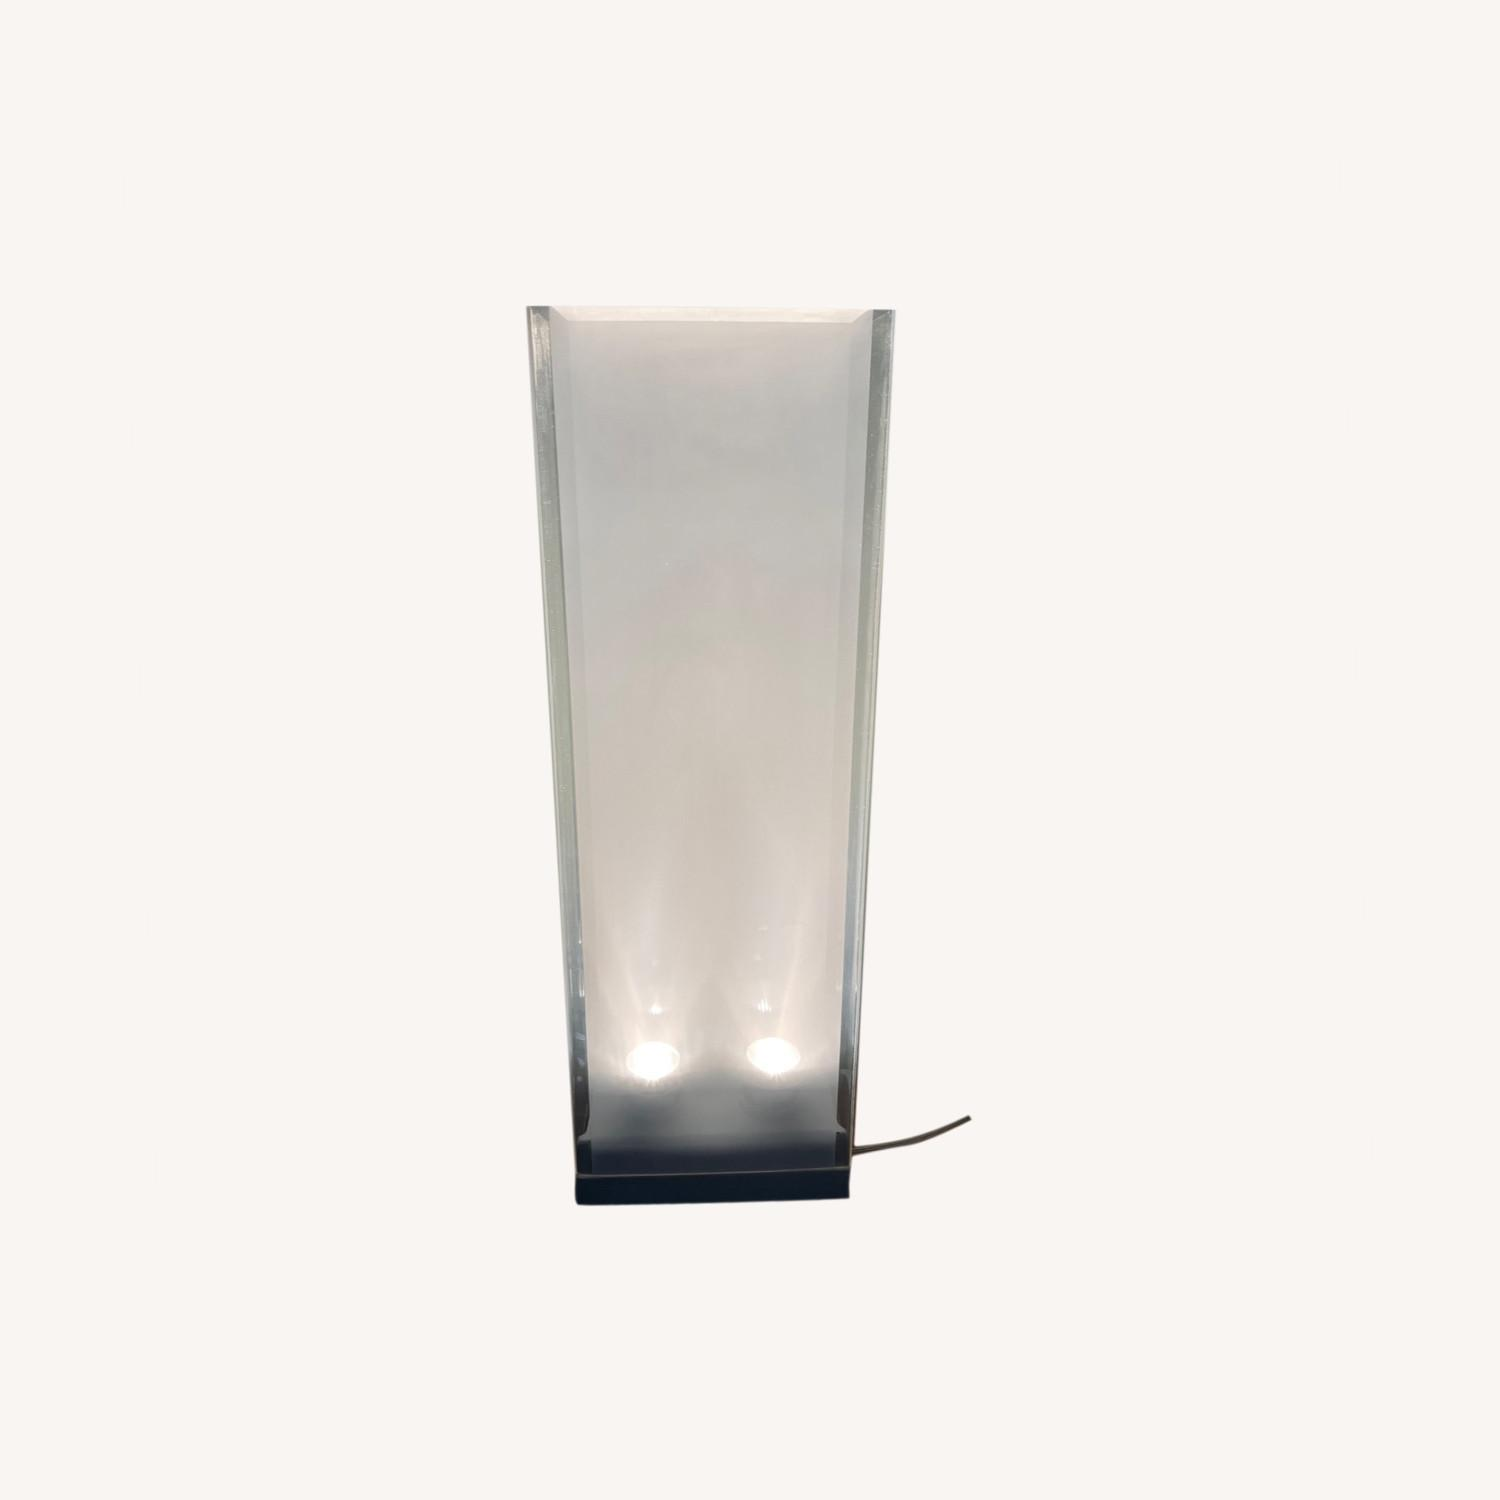 2 Matching BoConcept Halogen Table Lamps - image-0